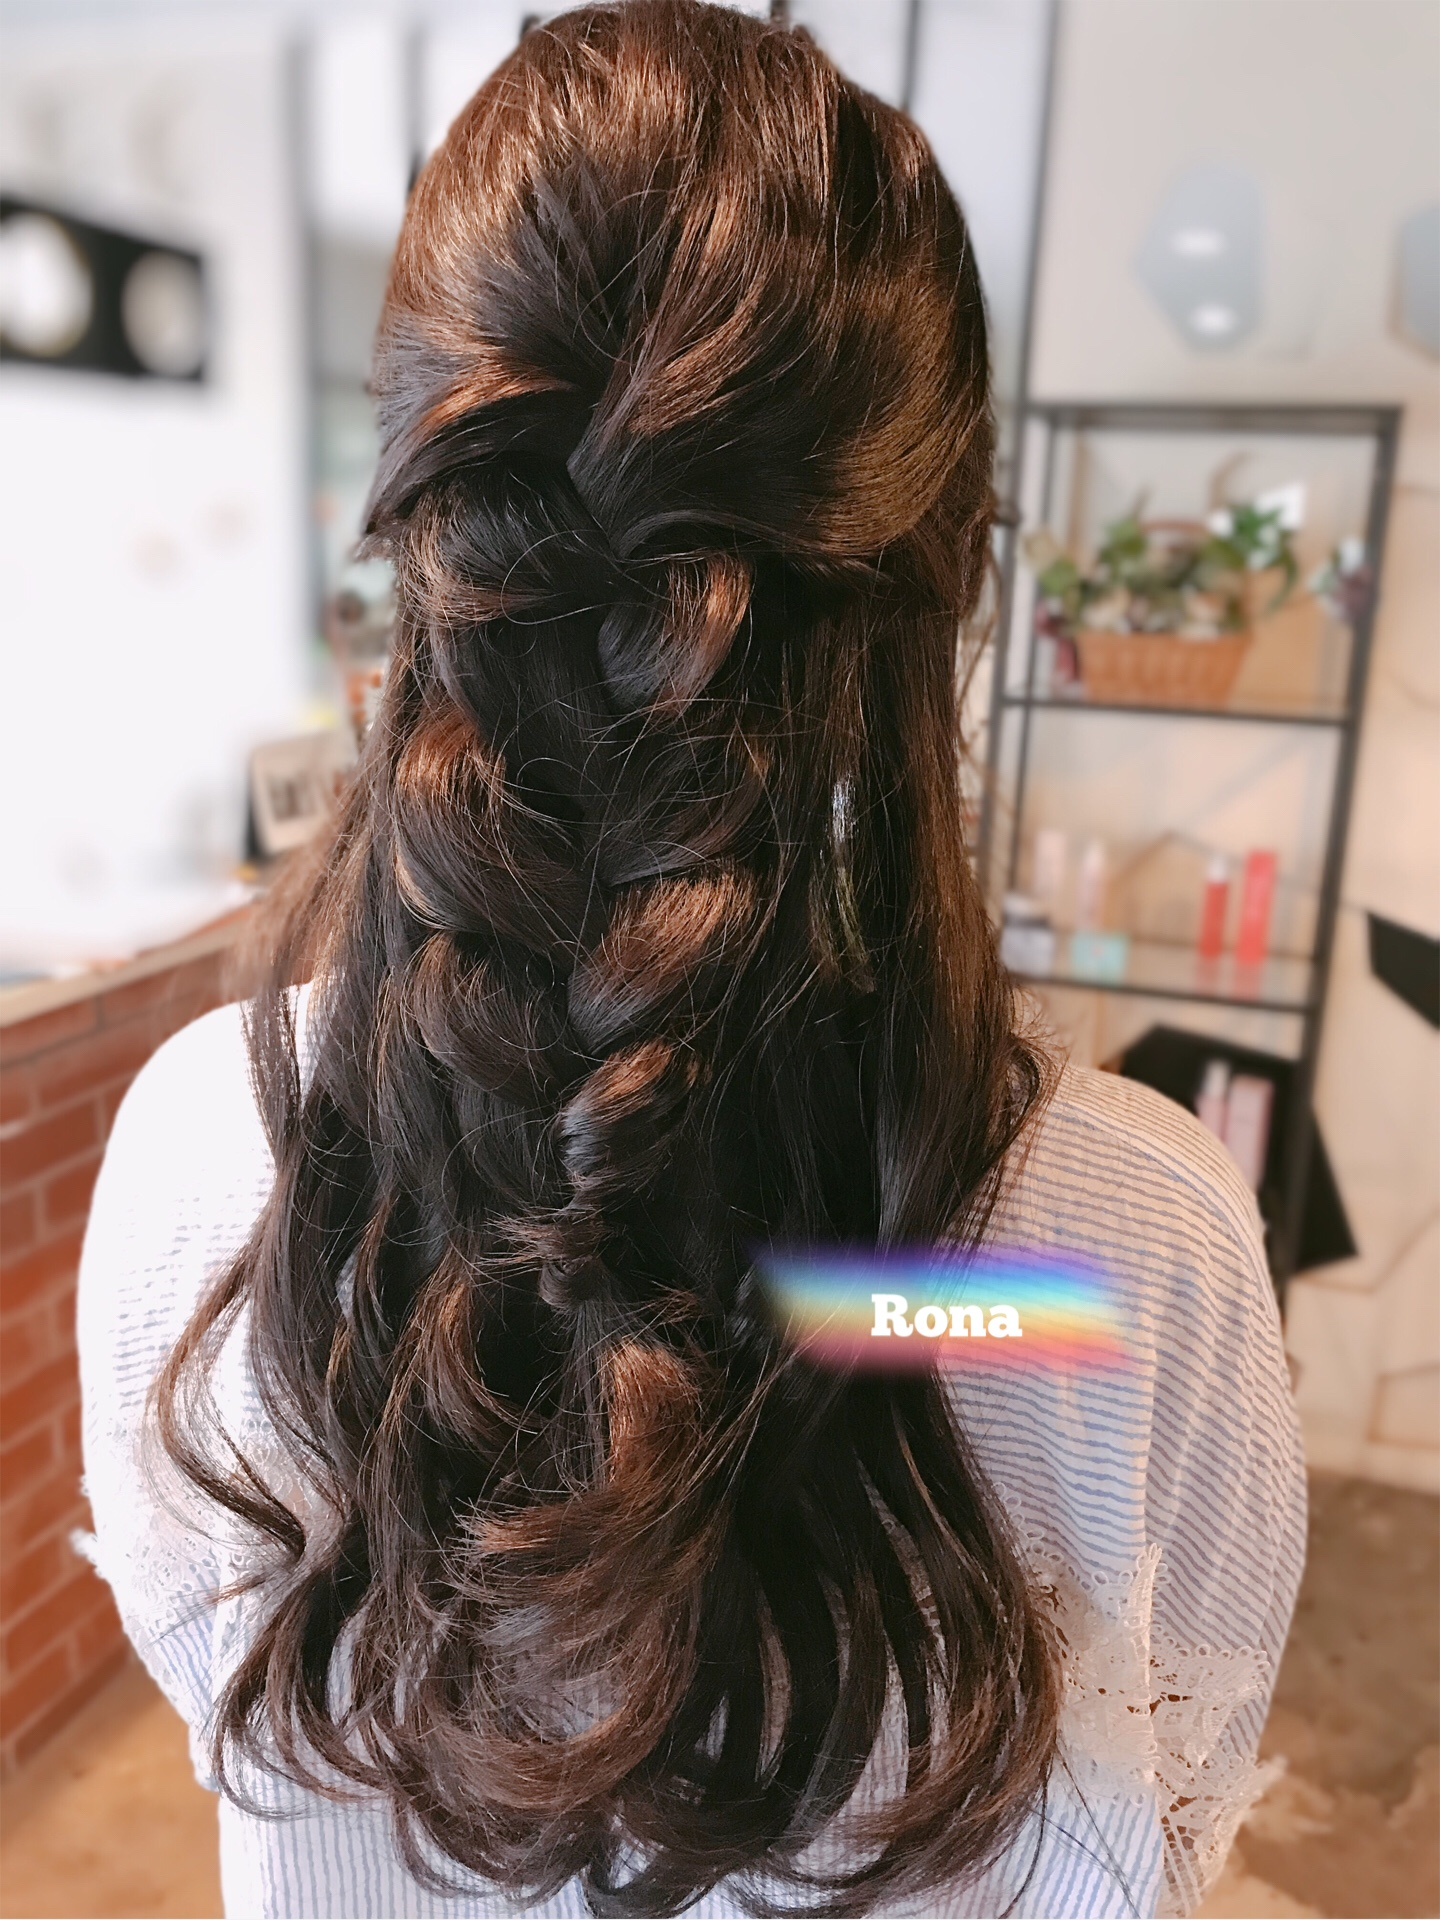 Styling | Half braided style